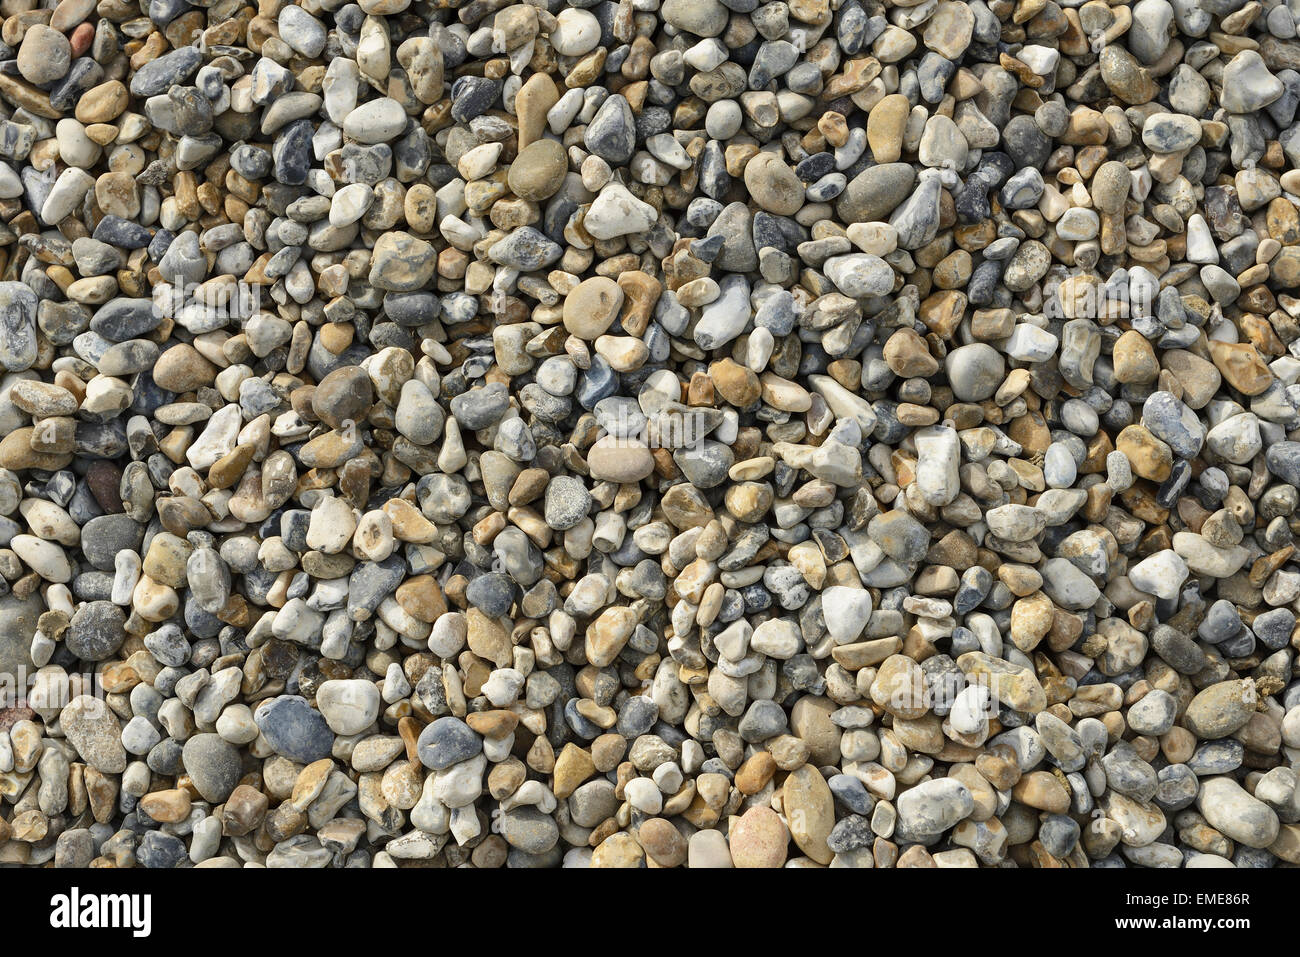 Beach pebbles - Stock Image